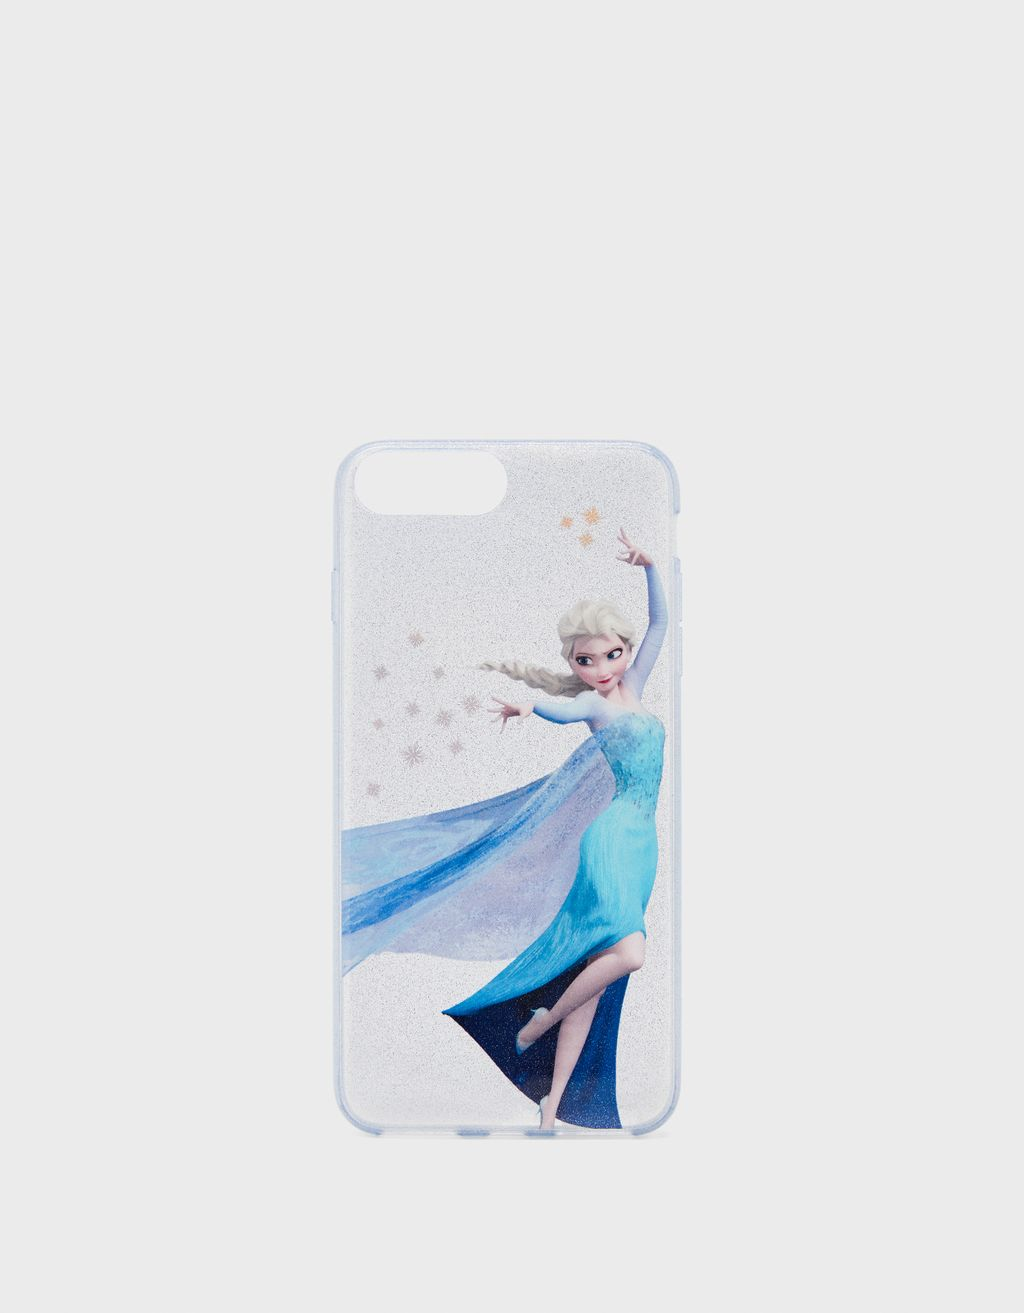 Coque La Reine des neiges iPhone 6 plus / 7 plus / 8 plus